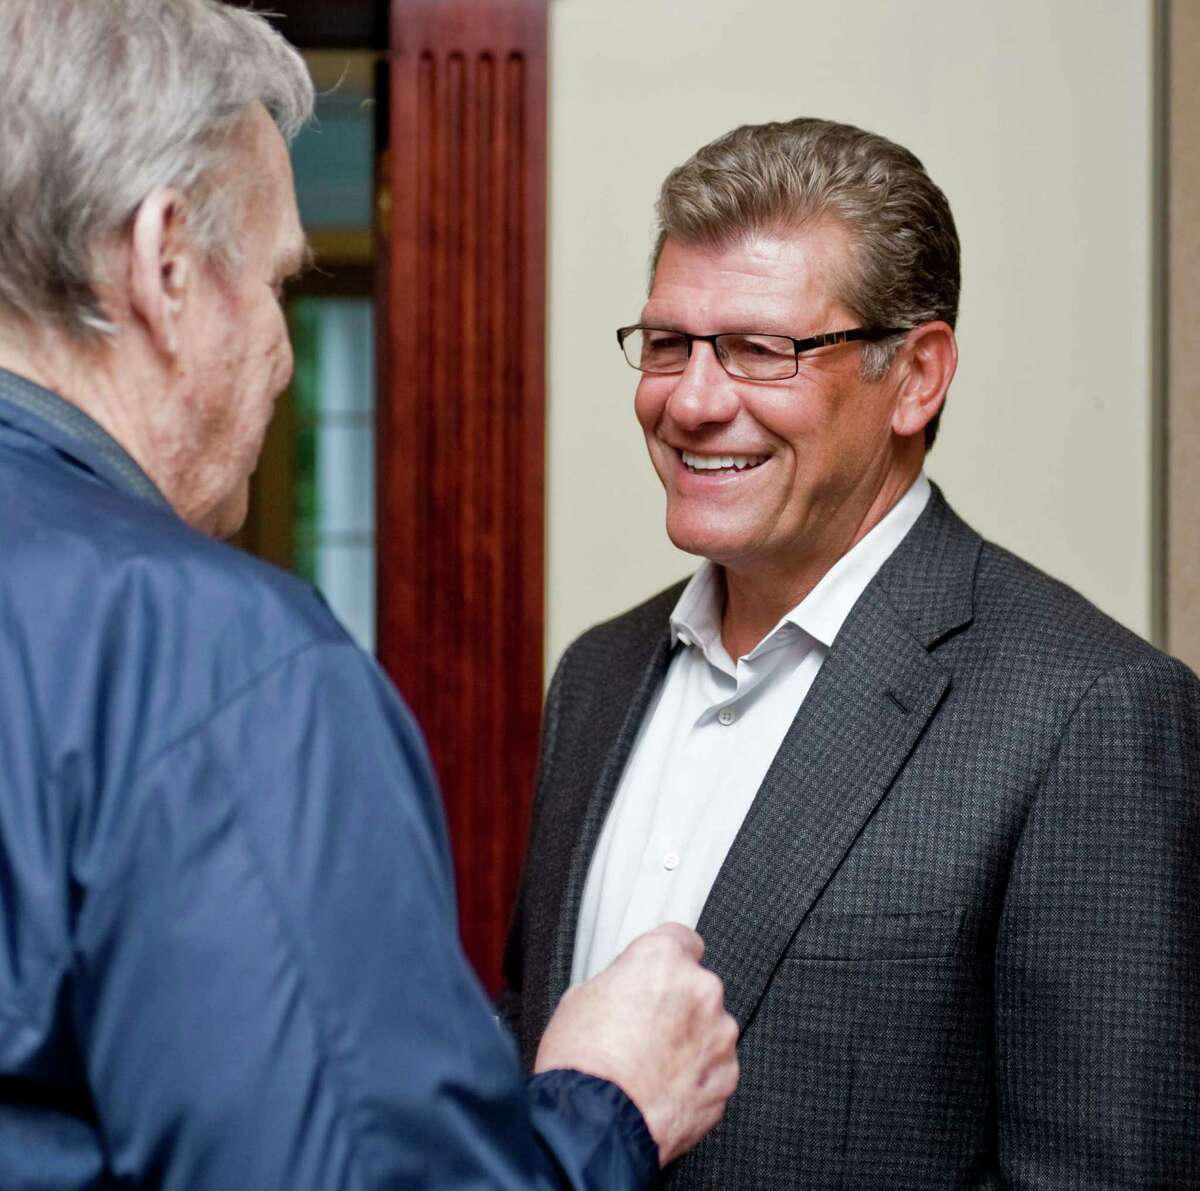 Doug Bussing came up from Norwalk to talk with UConn women's basketball coach Geno Auriemma at the Amber Room Colonnade in Danbury, where Coach Auriemma spoke at the UCONN Alumni Association dinner. Monday, Sept. 10, 2012